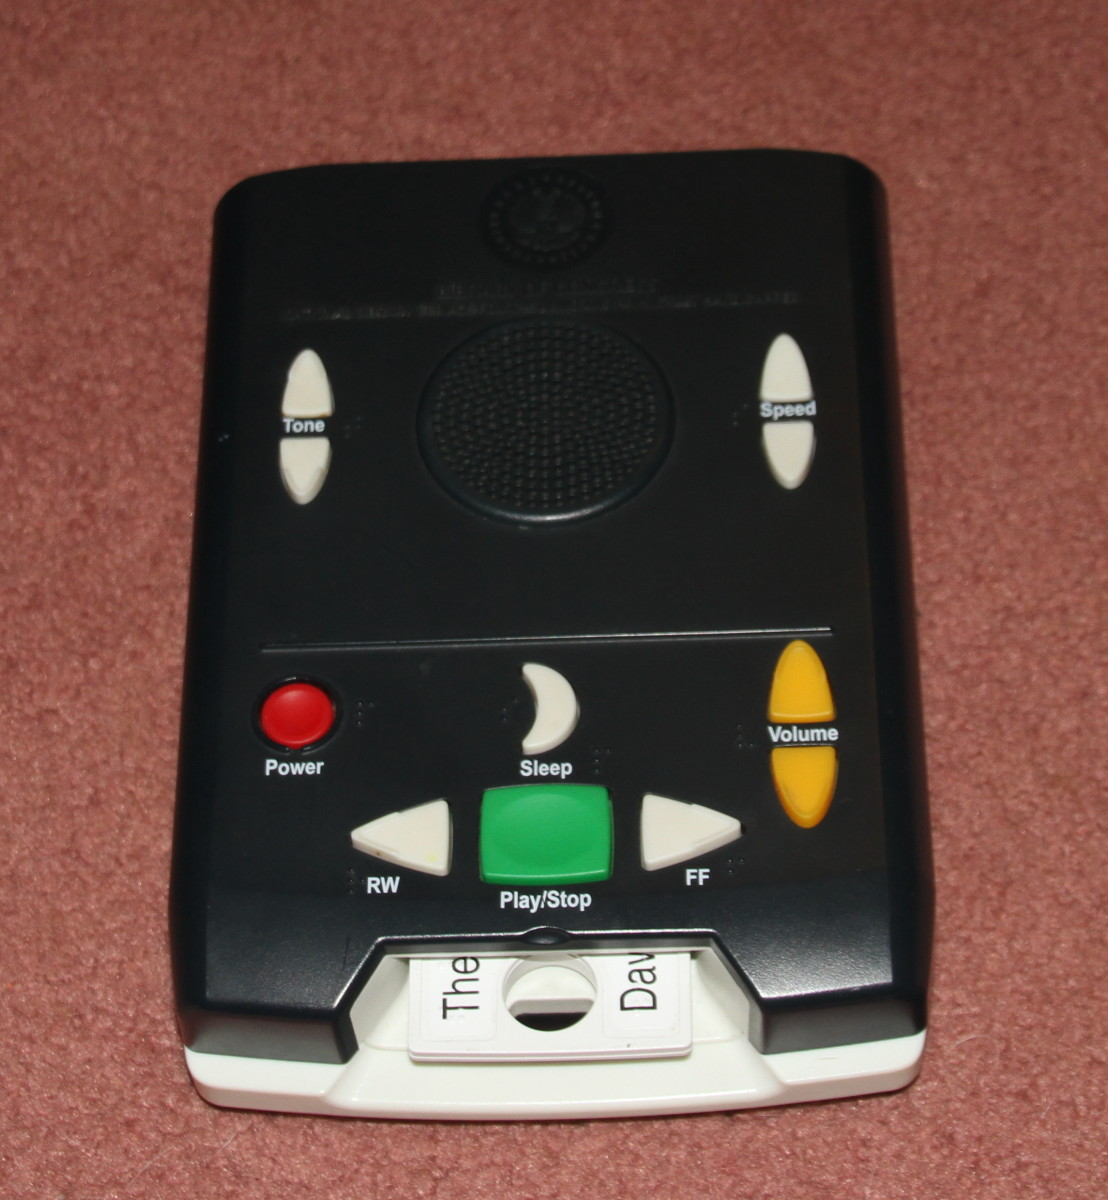 This talking book player plays books recorded on special cartridges. This device allows people to listen to books rather than use their reduced vision to read them.